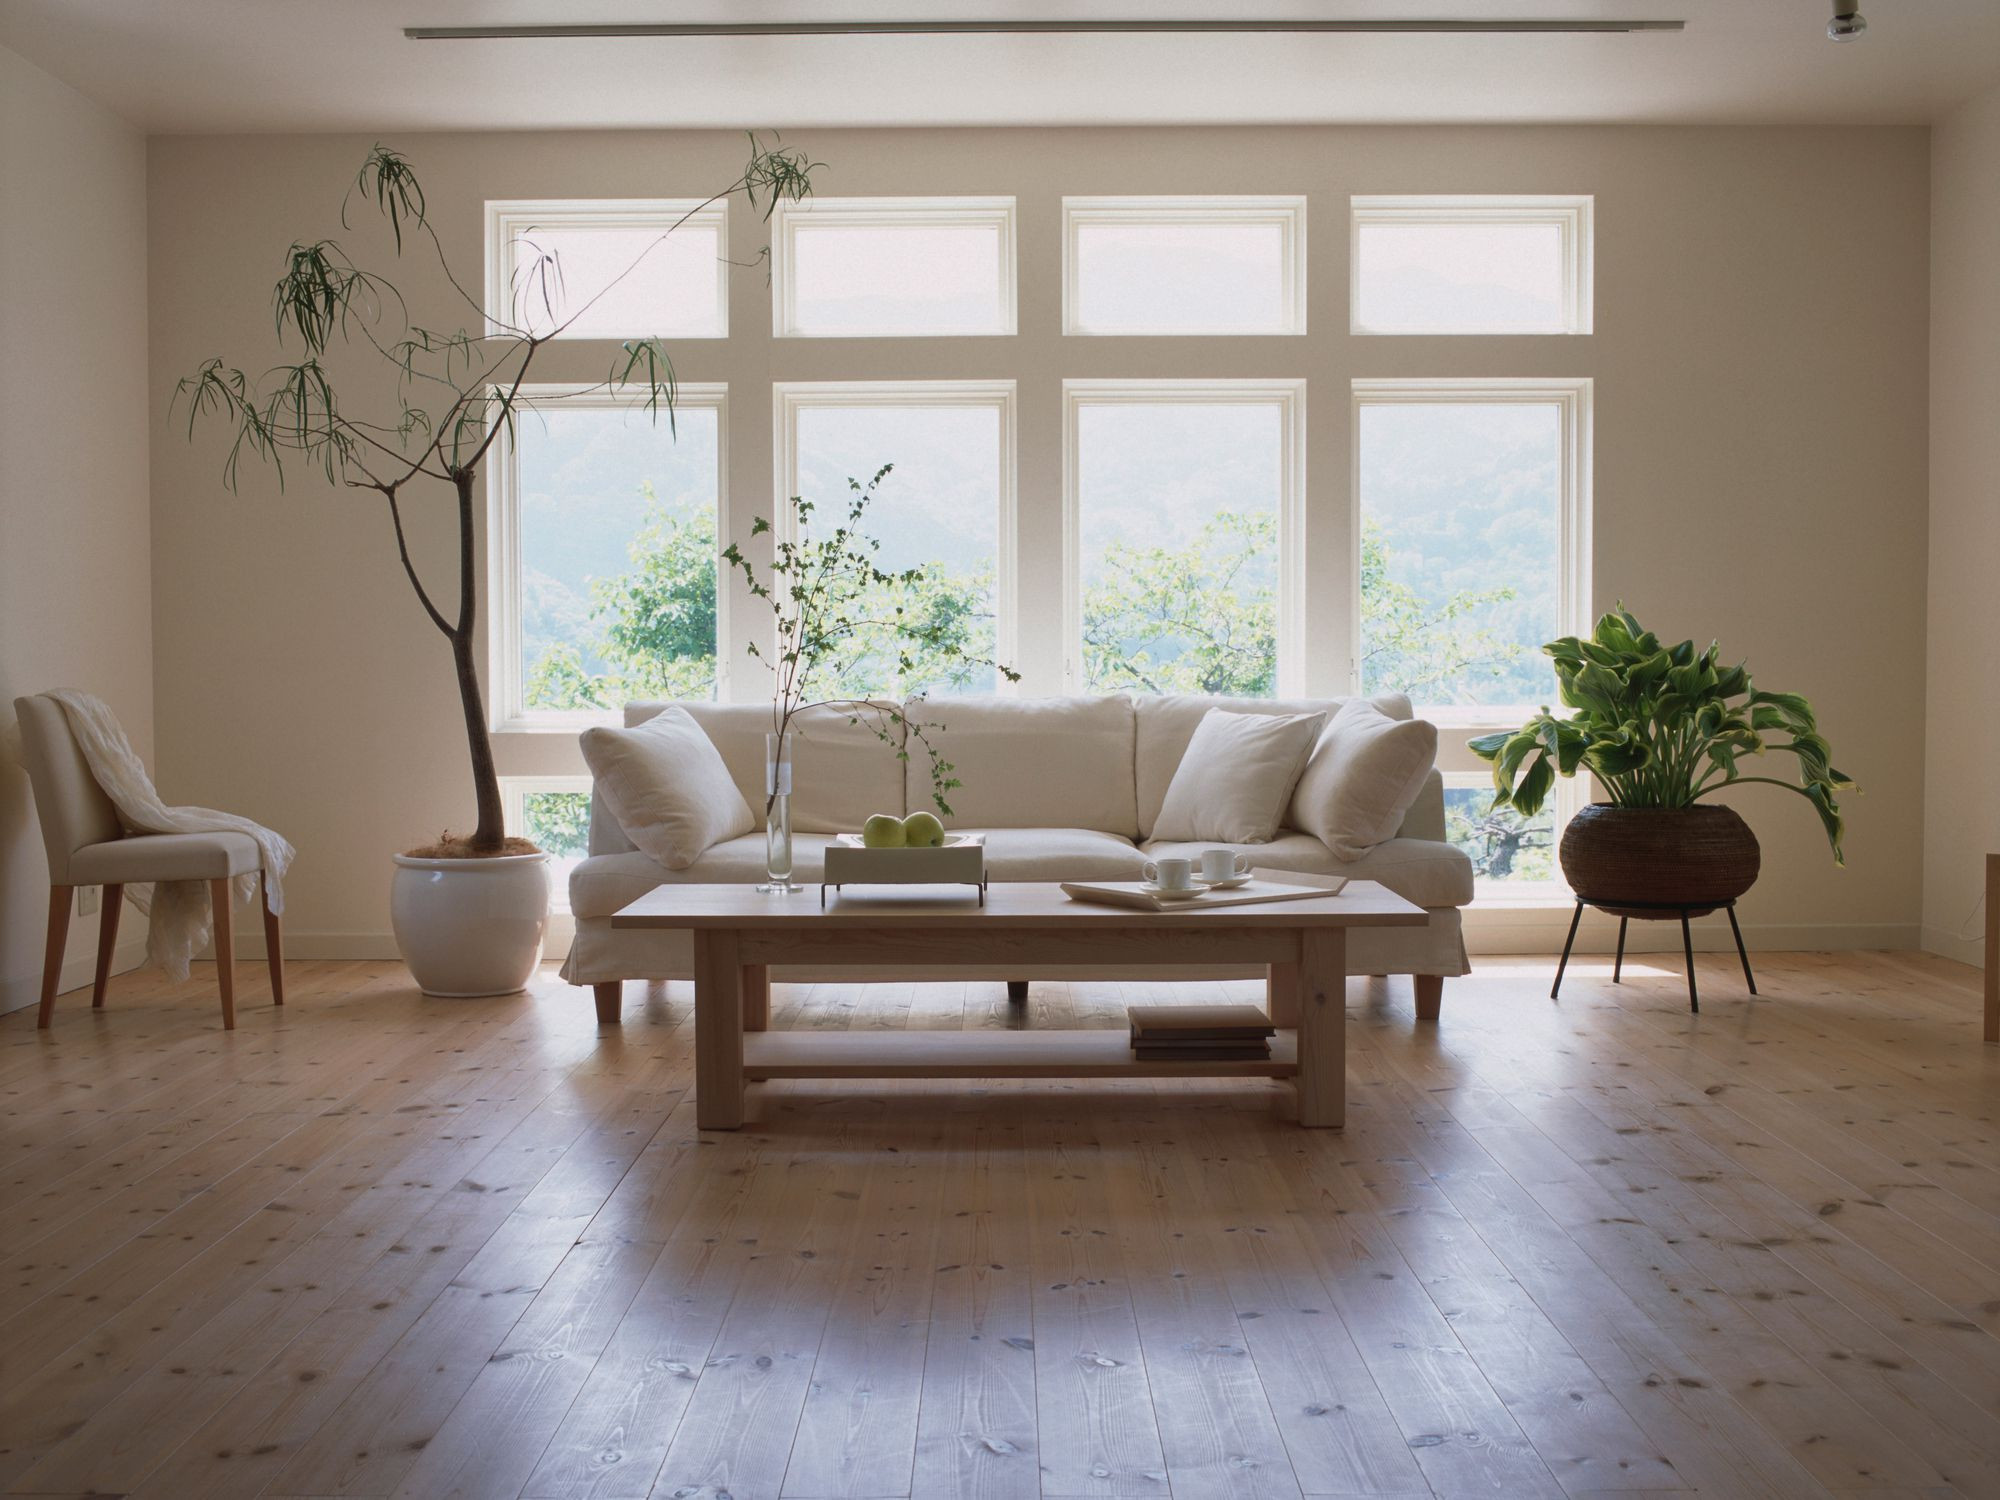 hardwood floor dent repair of laminate flooring pros and cons throughout living room laminate floor gettyimages dexph070 001 58b5cc793df78cdcd8be2938